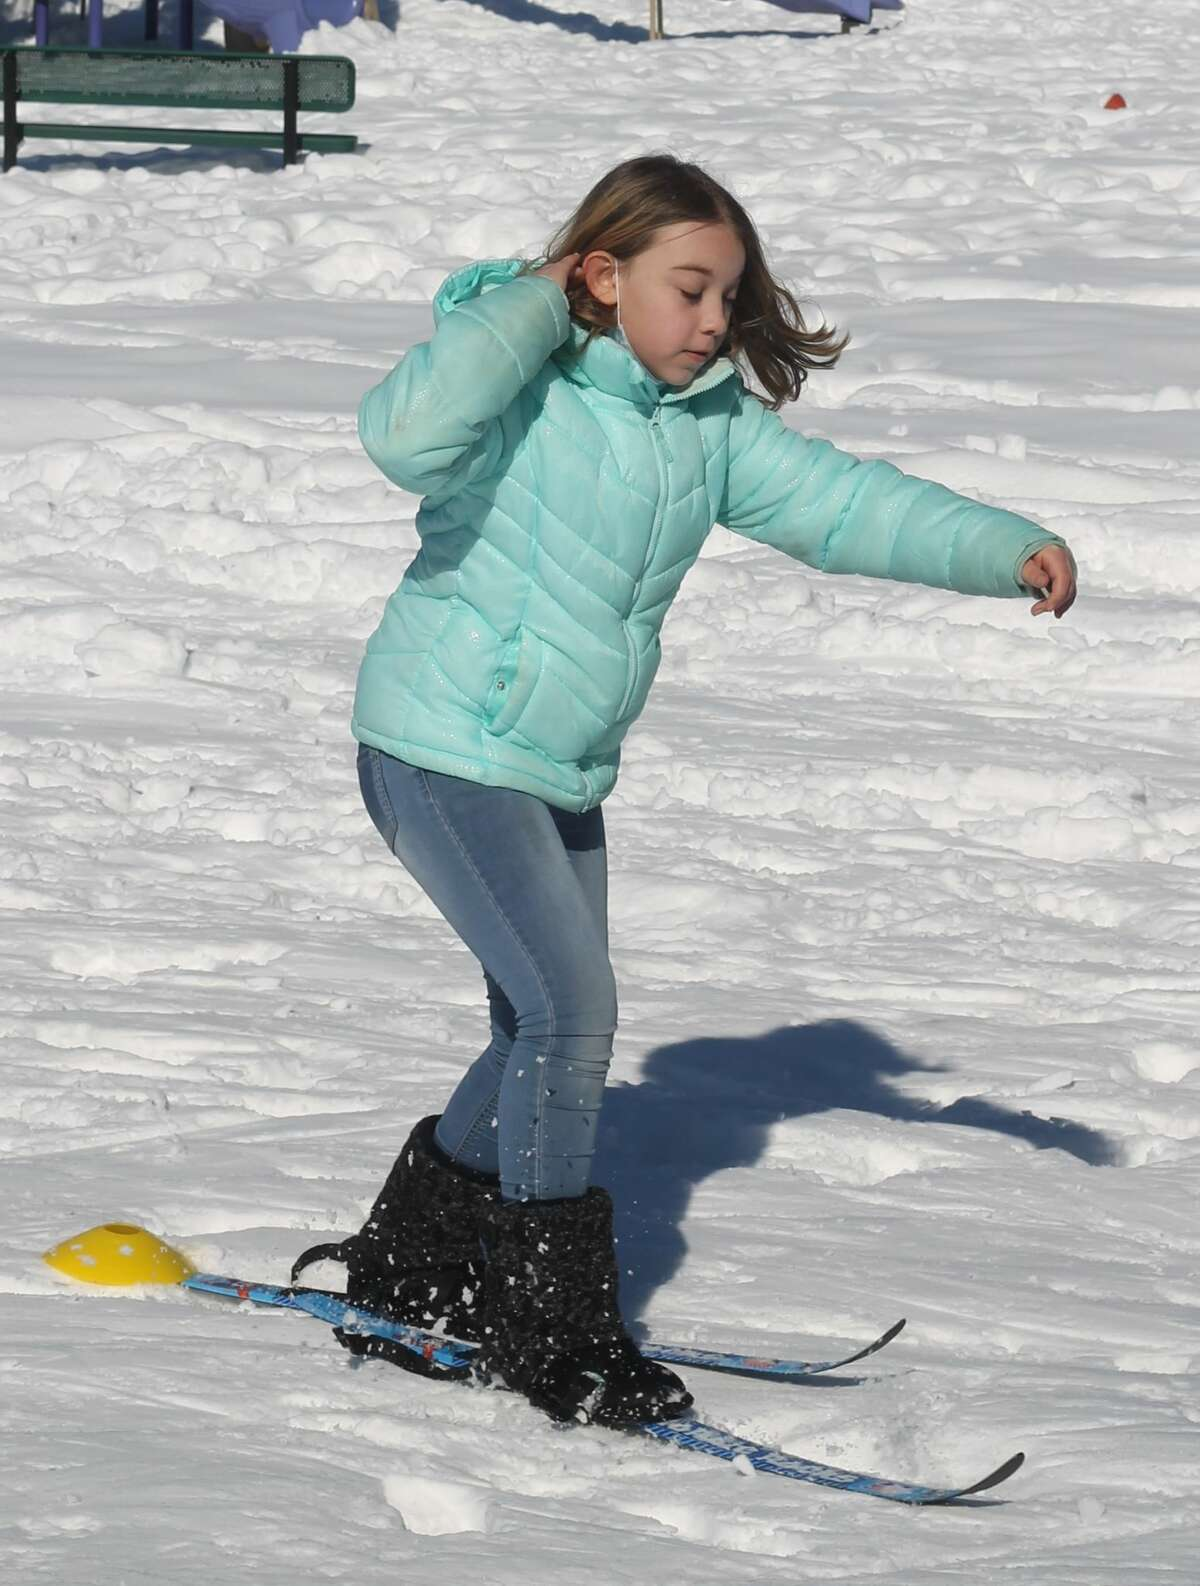 Elementary students at Bear Lake Schools enjoy cross-country ski lessons thanks to Crystal Mountain's Nordic Rocks program. Students went through drills, relay races and games to familiarize themselves with the sport.